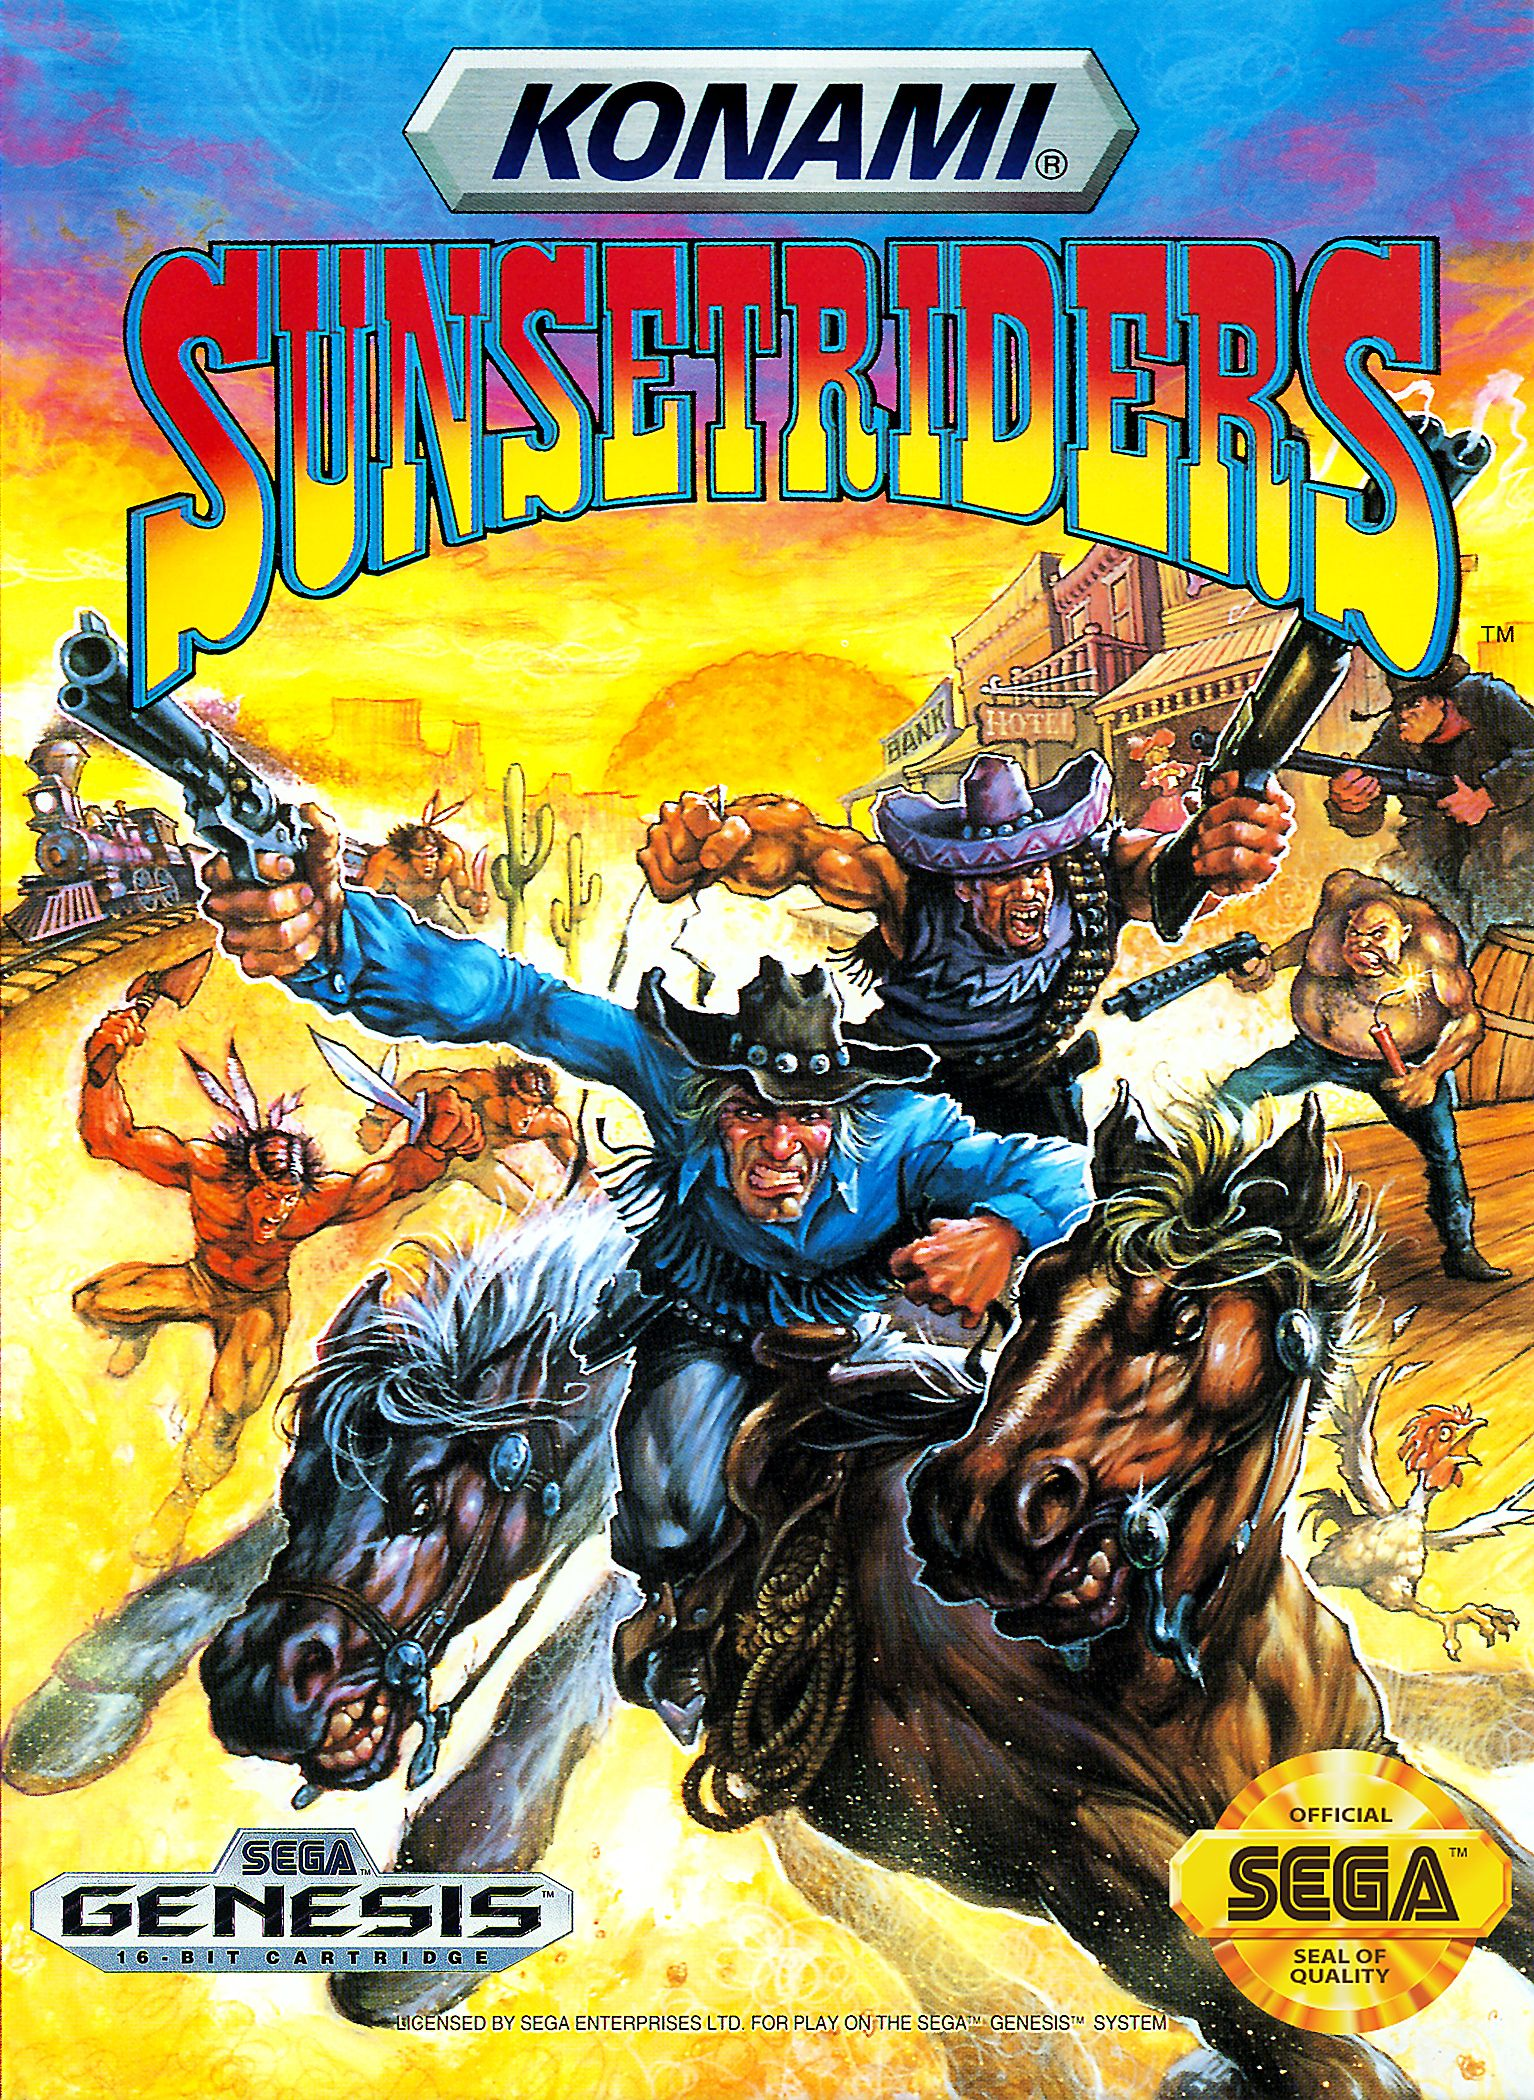 Sunset riders openbor to ps4